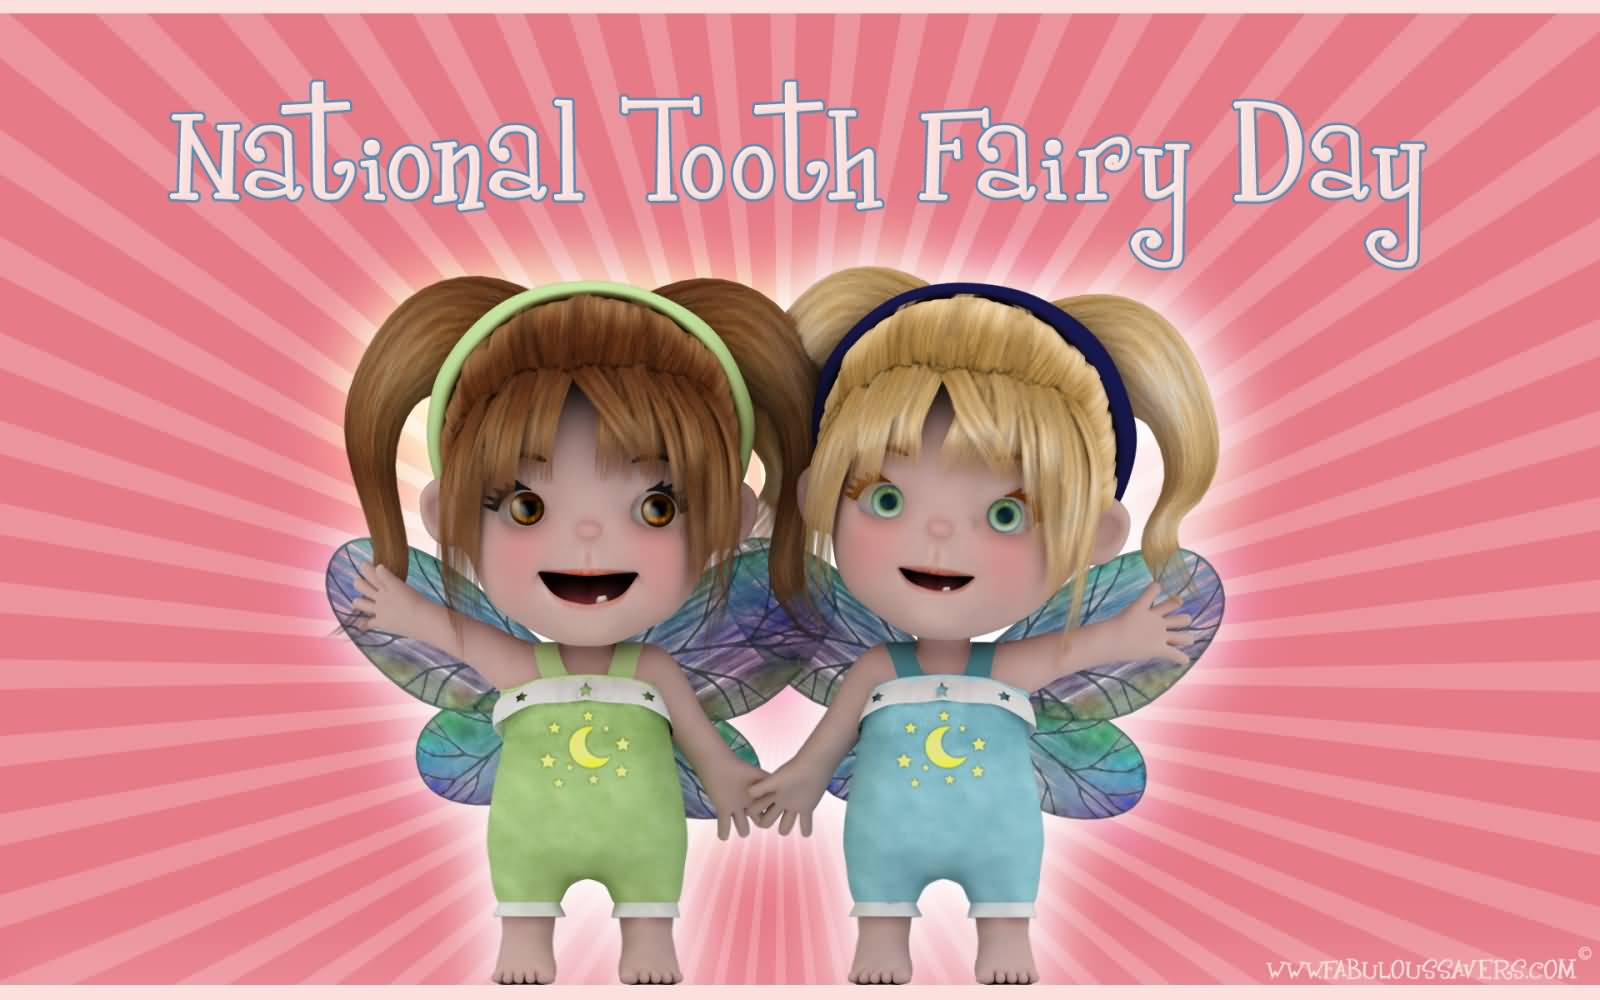 National Tooth Fairy Day Picture